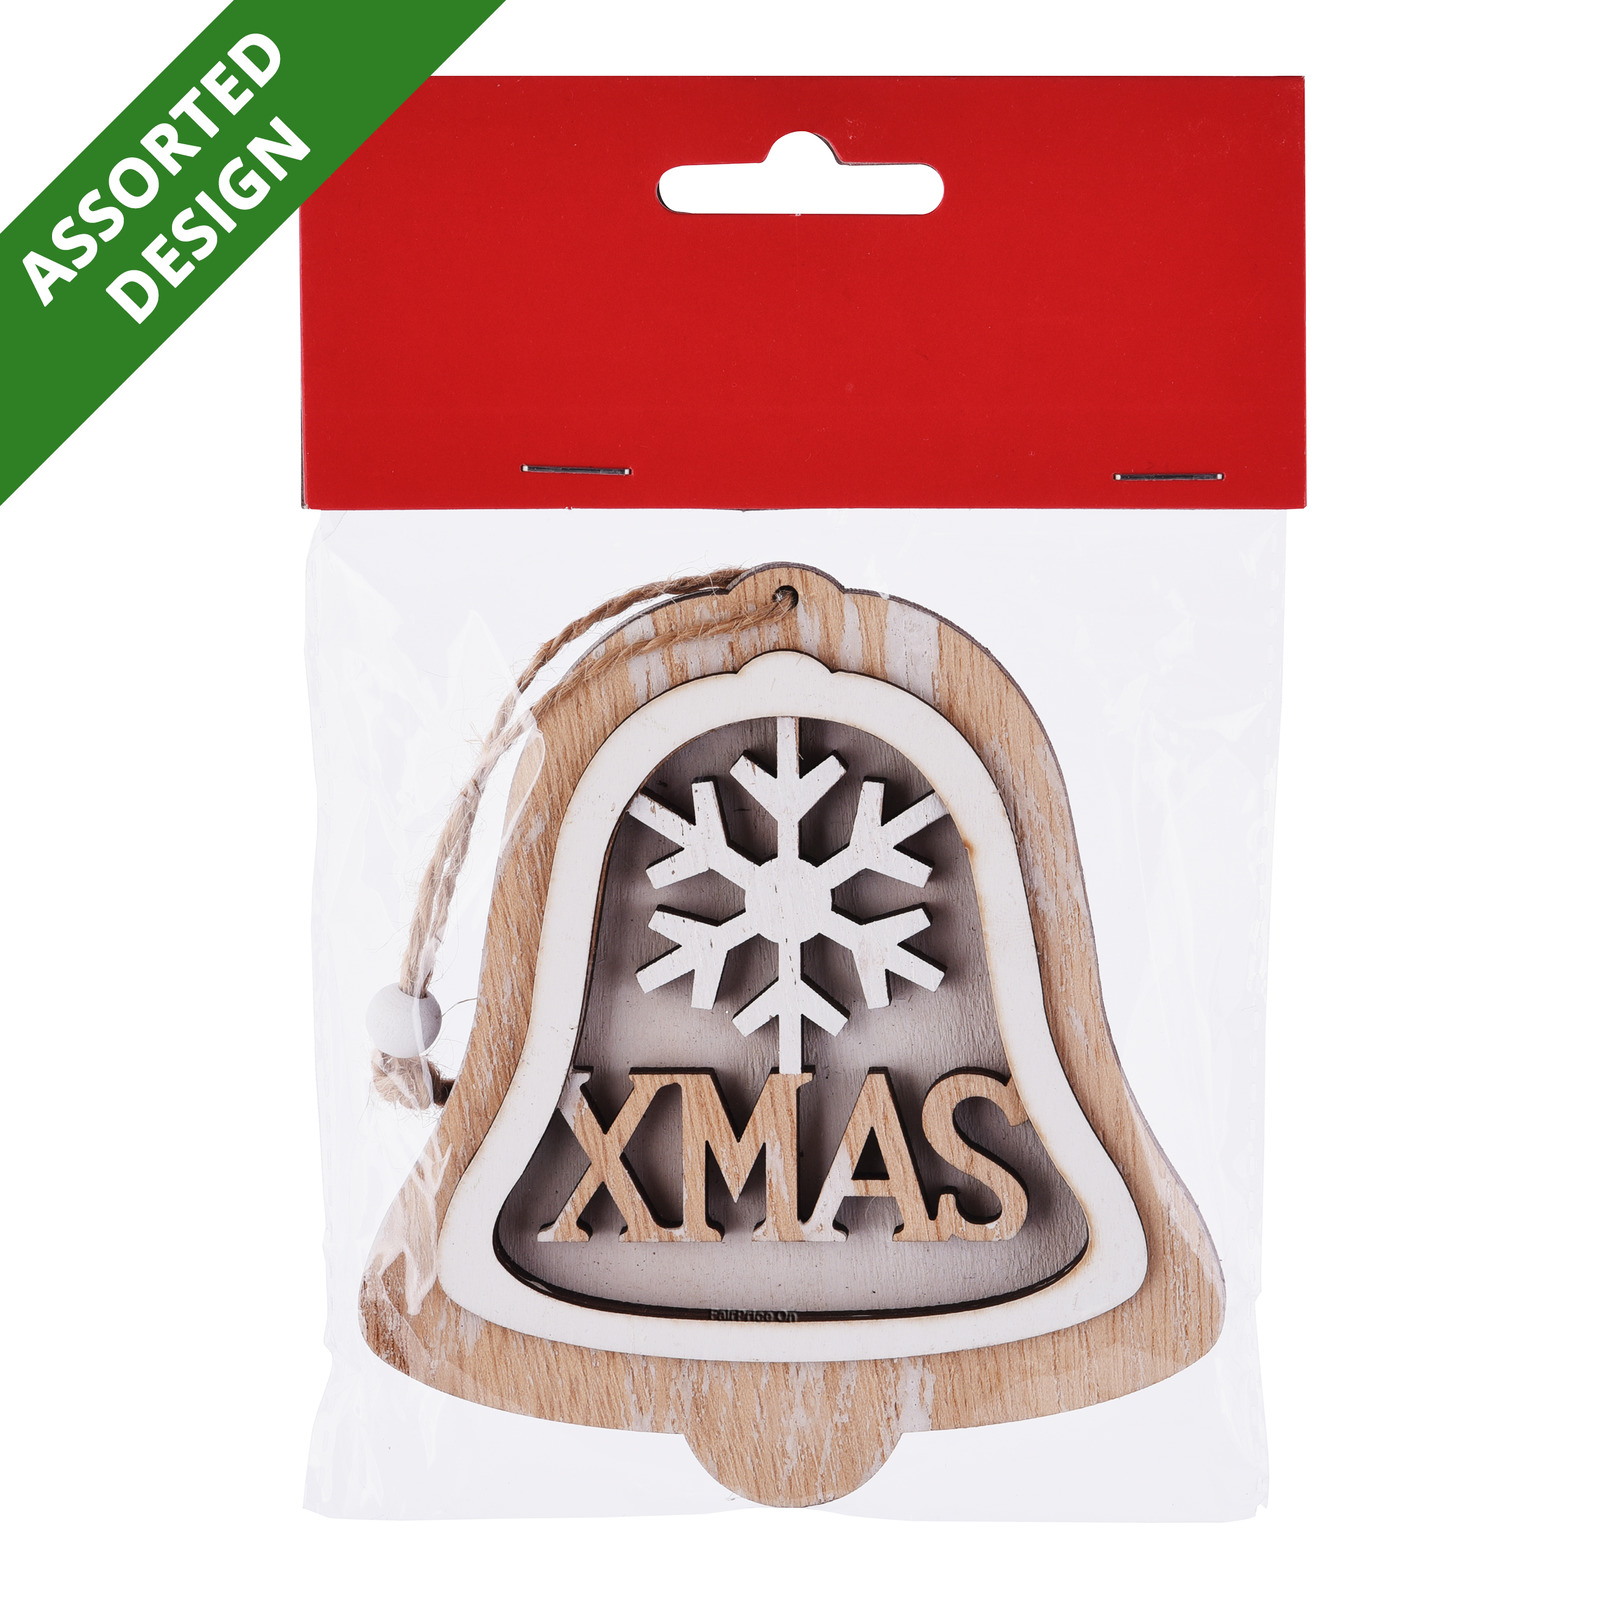 Imported Christmas Wood Ornament - Assorted